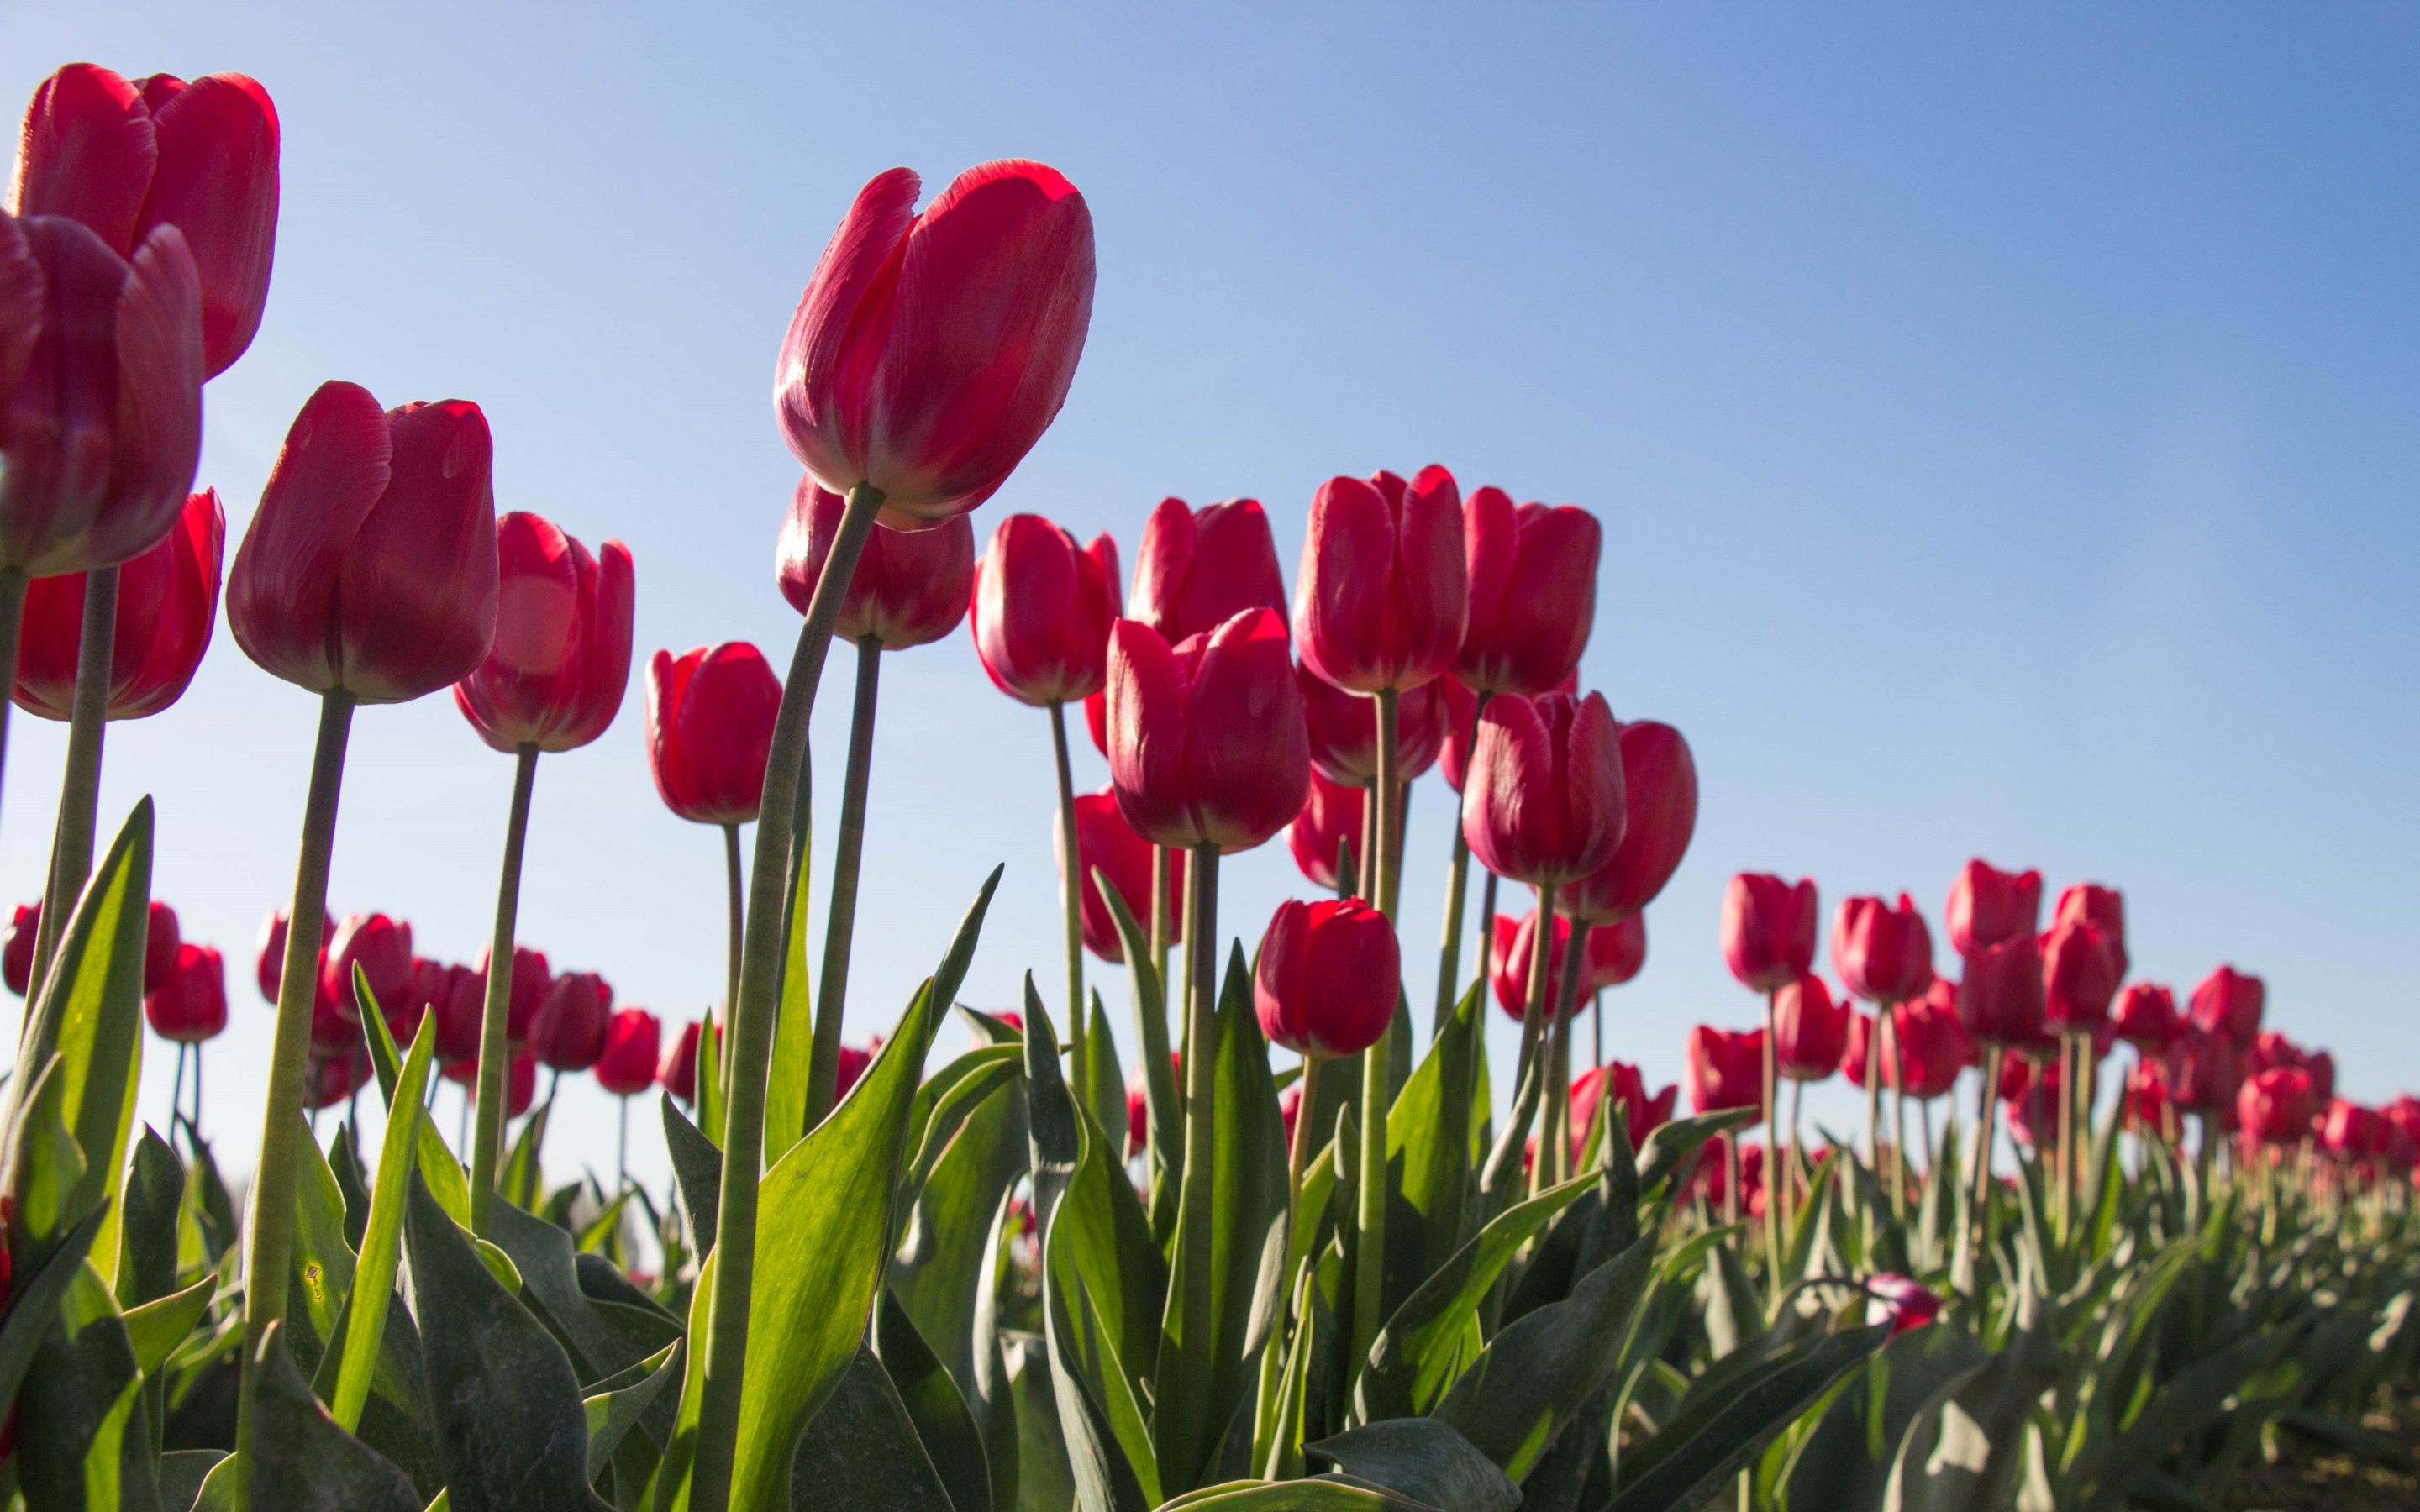 Red tulips wallpaper 2880x1800